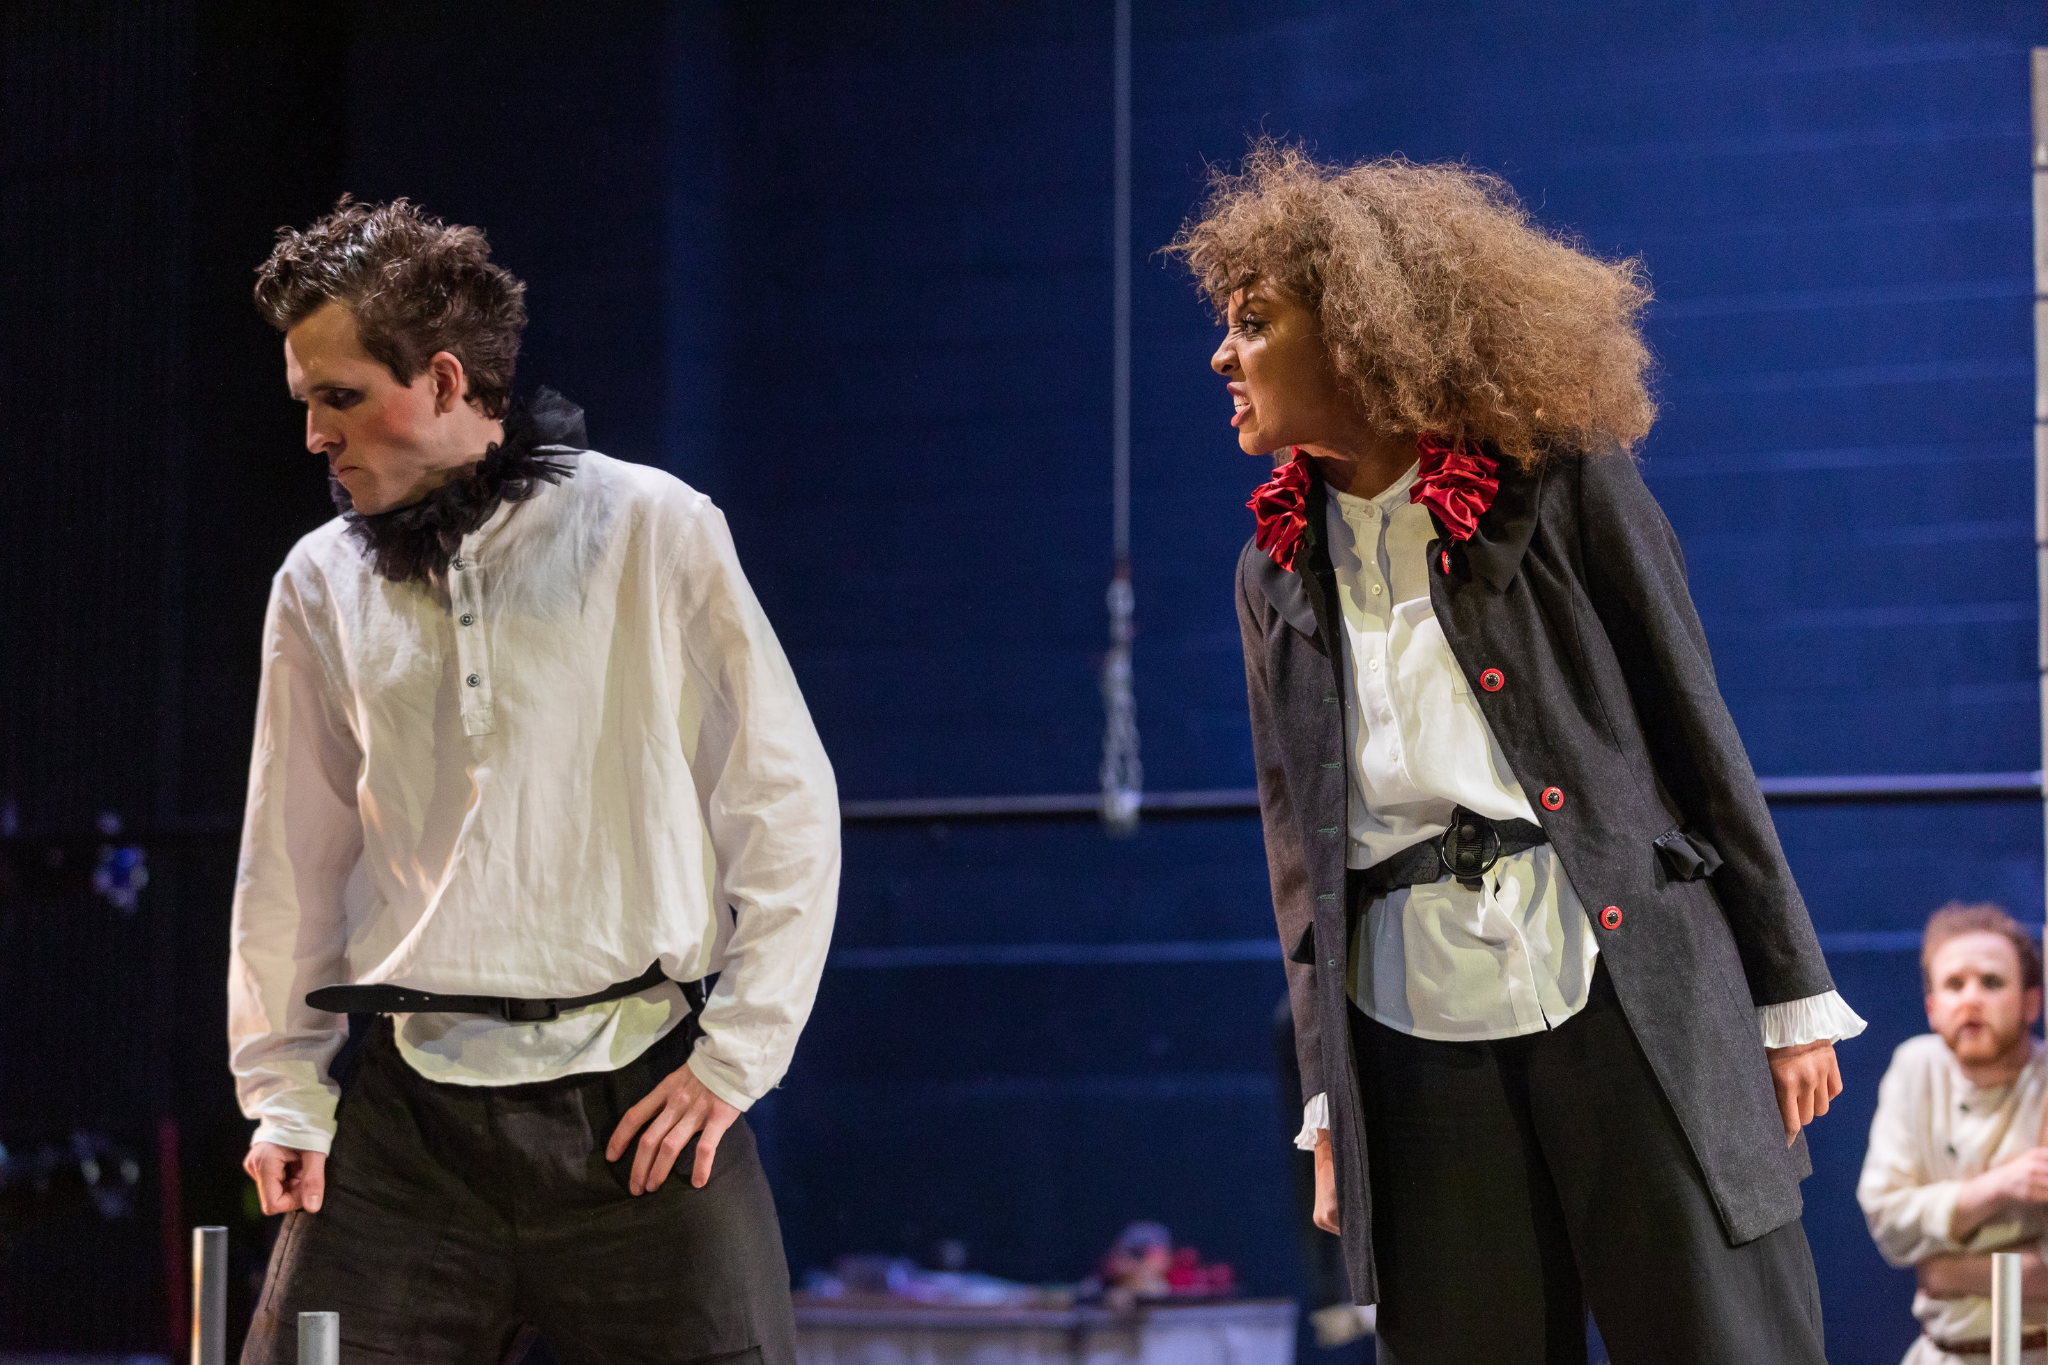 John Hardin (Mercutio) and Malikah McHarrin-Cobb (Prince Escalus) in Romeo & Juliet, CSC2, 2019-Photo by Nile Hawver